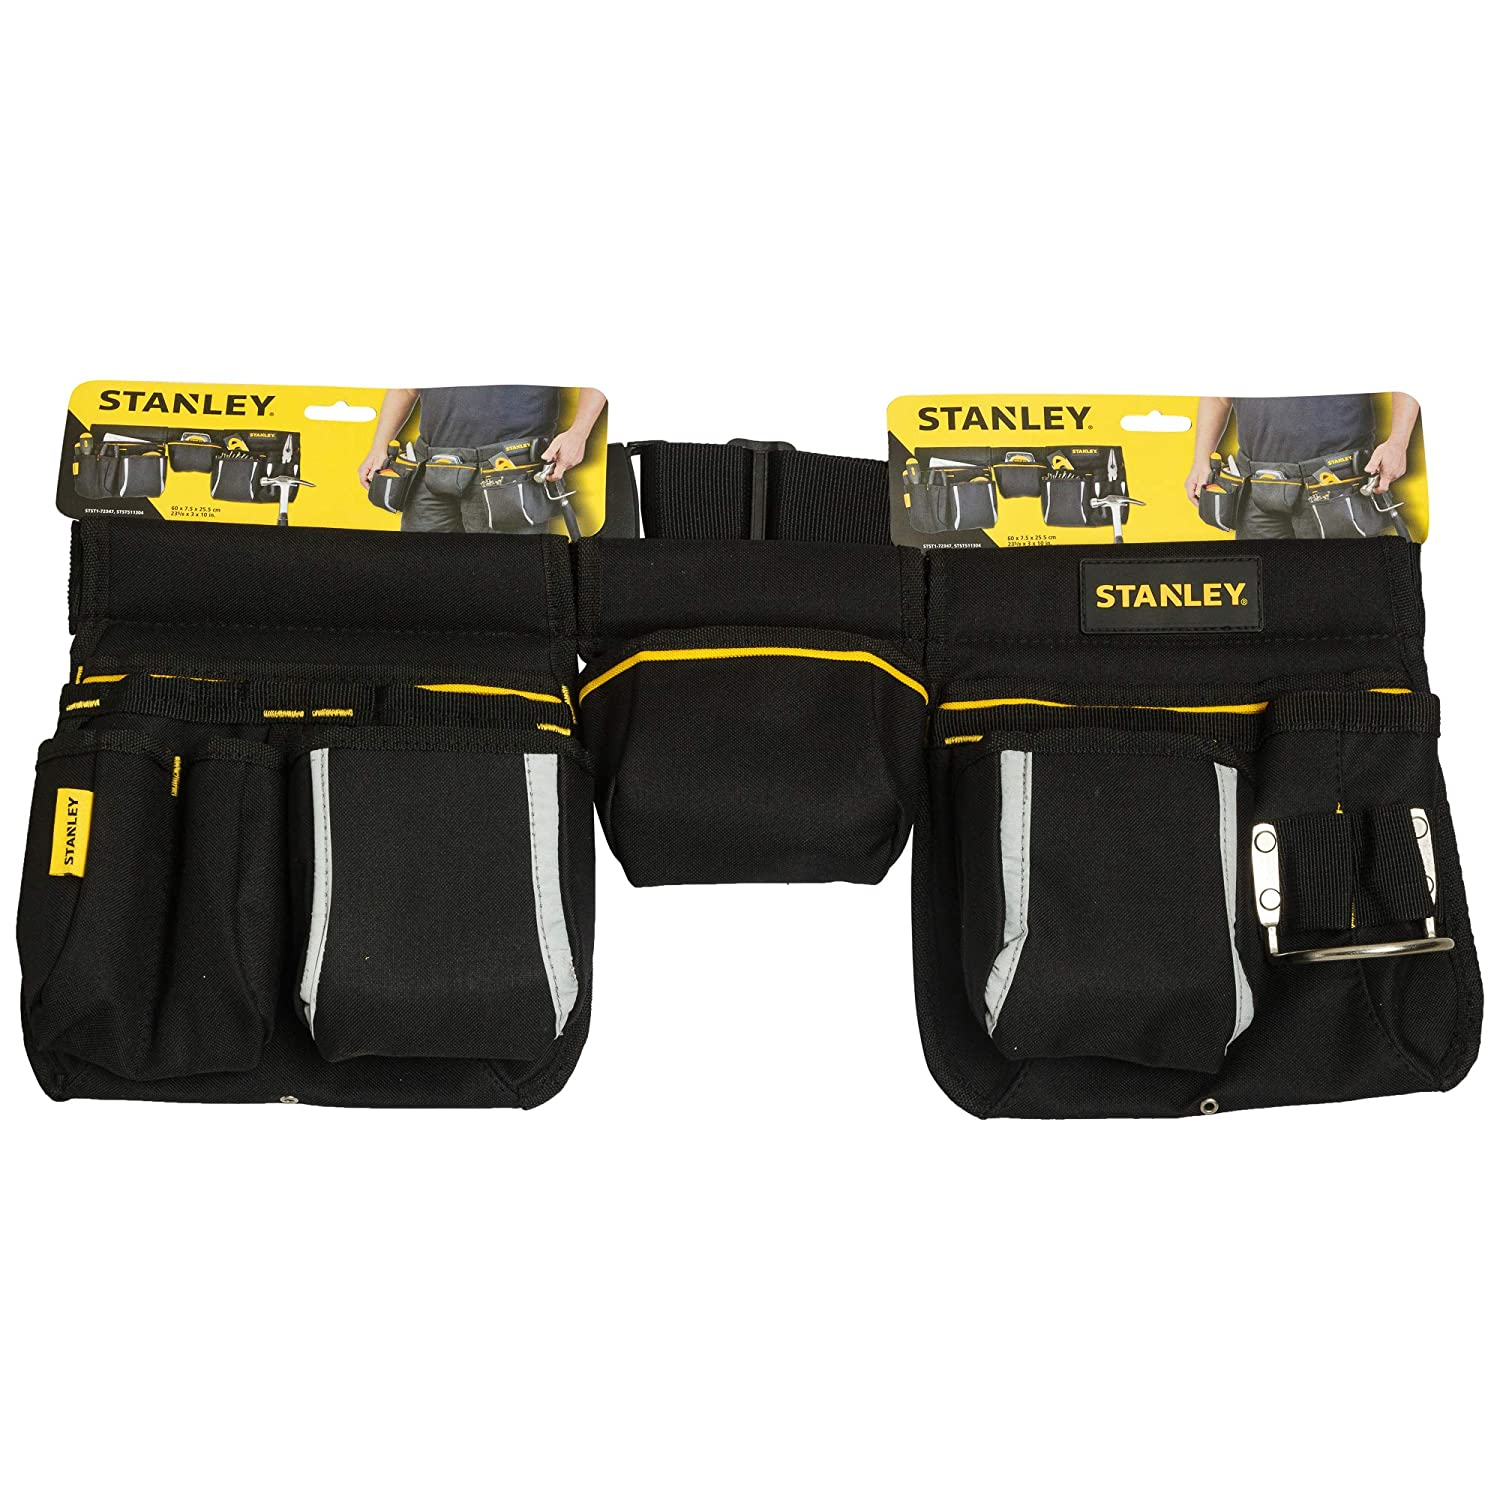 Stanley Tool Apron, STST511304